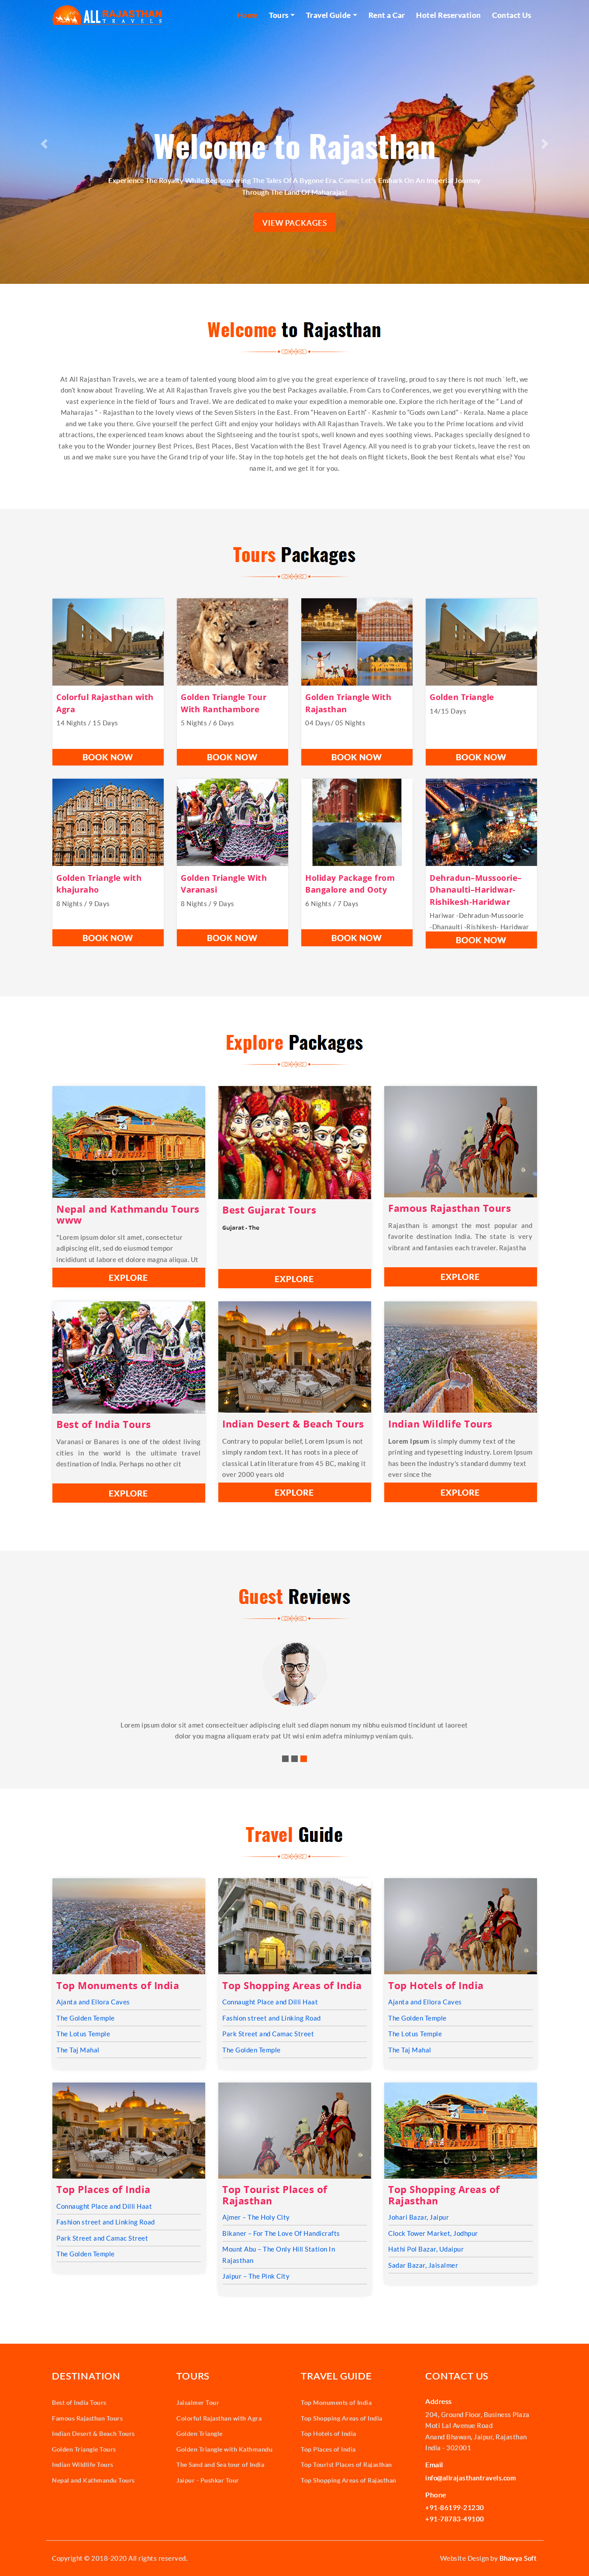 ALL RAJASTHAN TRAVELS